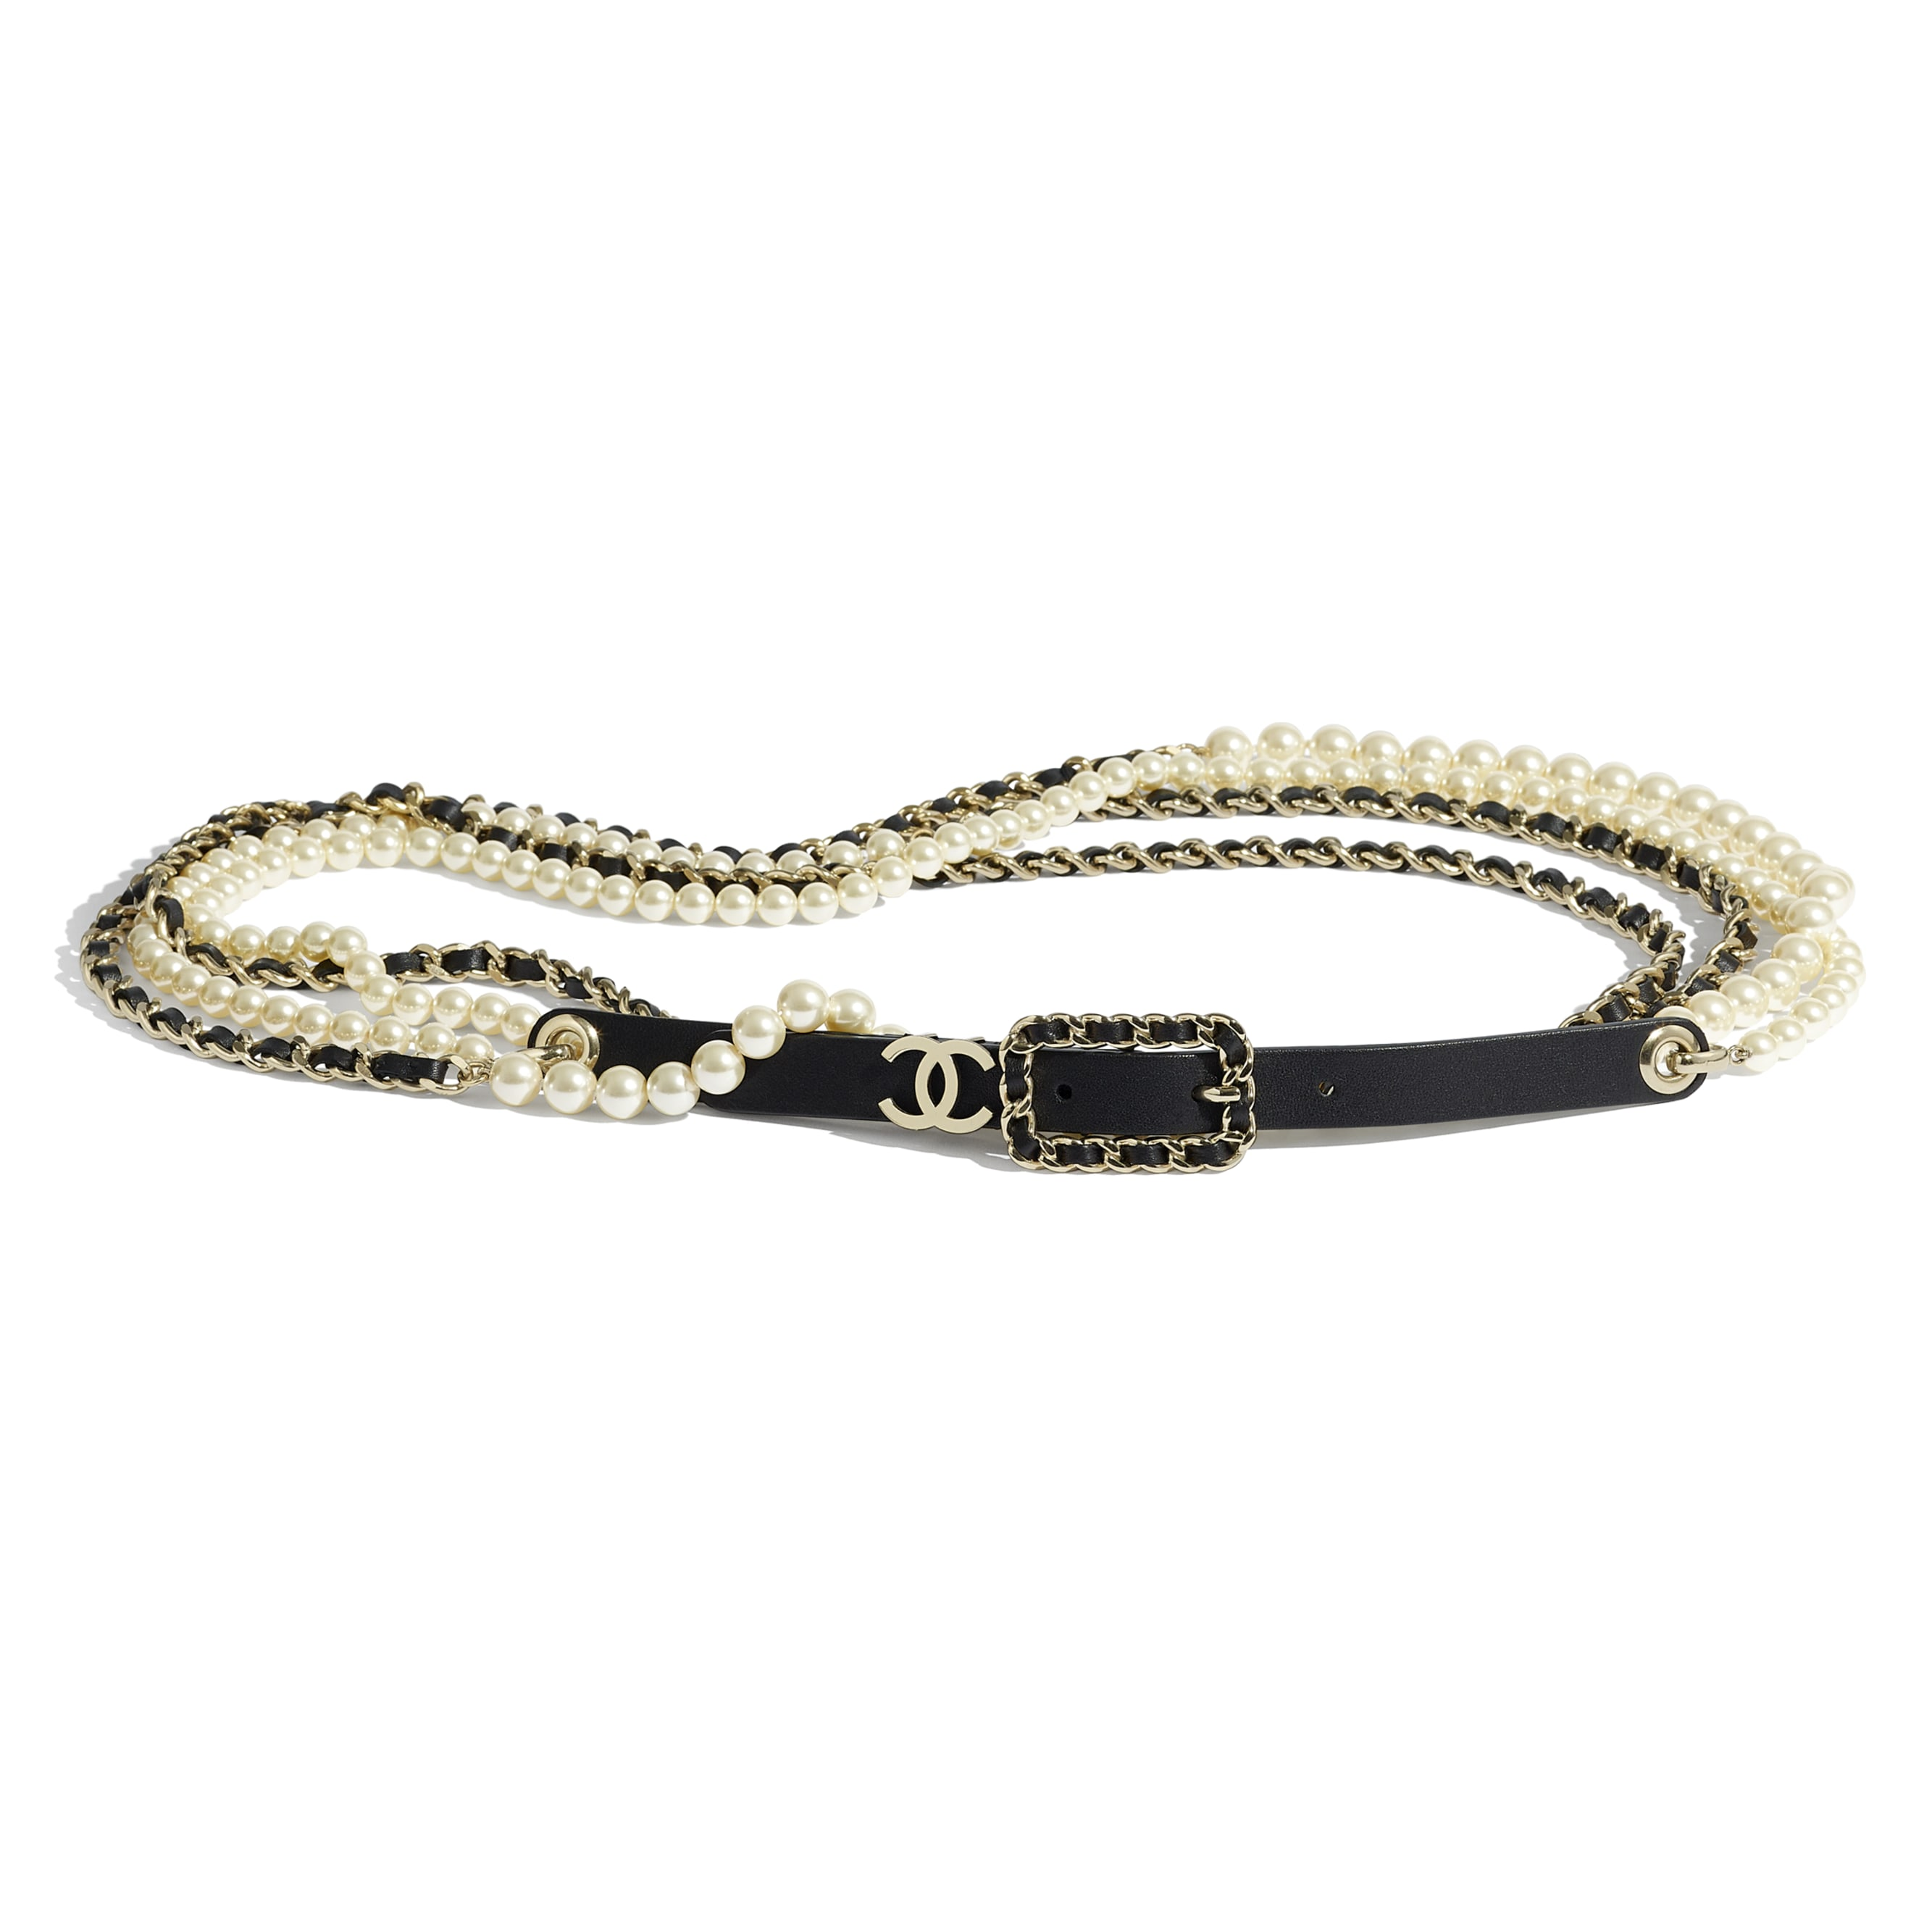 Belt - Black - Lambskin, Glass Pearls & Gold-Tone Metal - CHANEL - Default view - see standard sized version